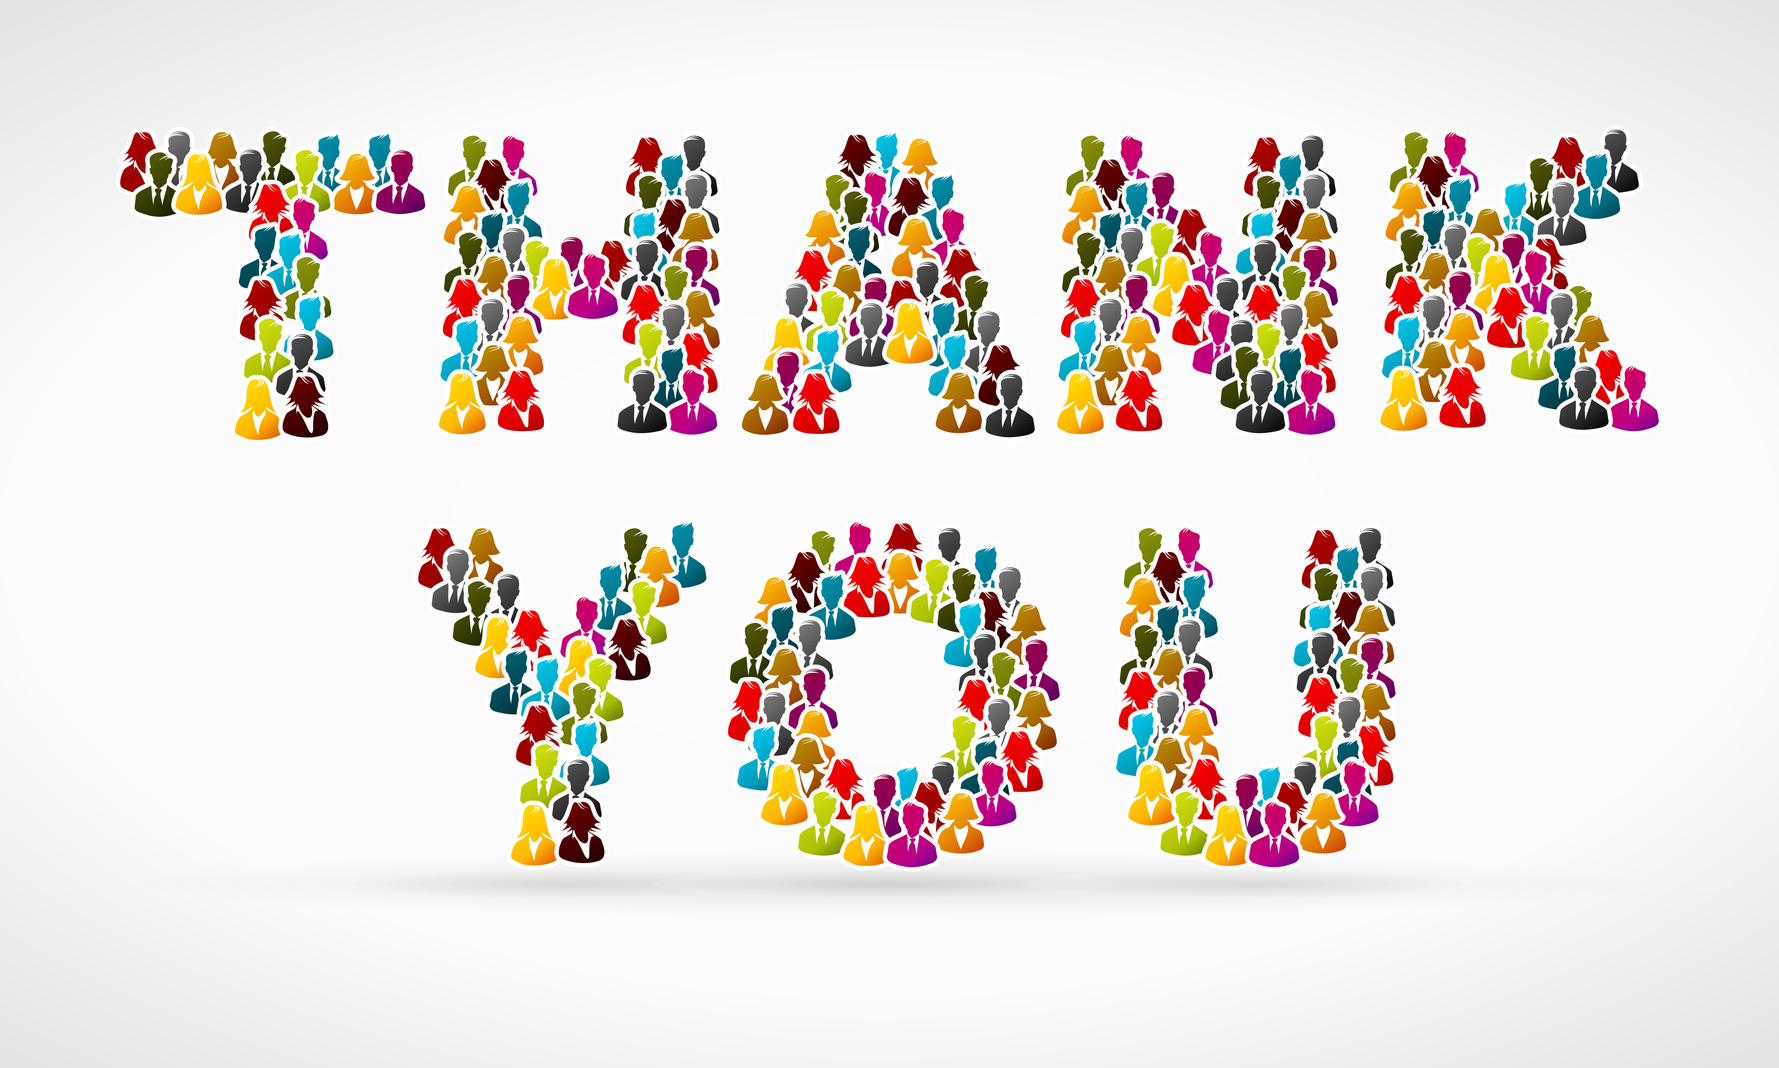 Is Your Thank You Campaign Thanking All the Right People?